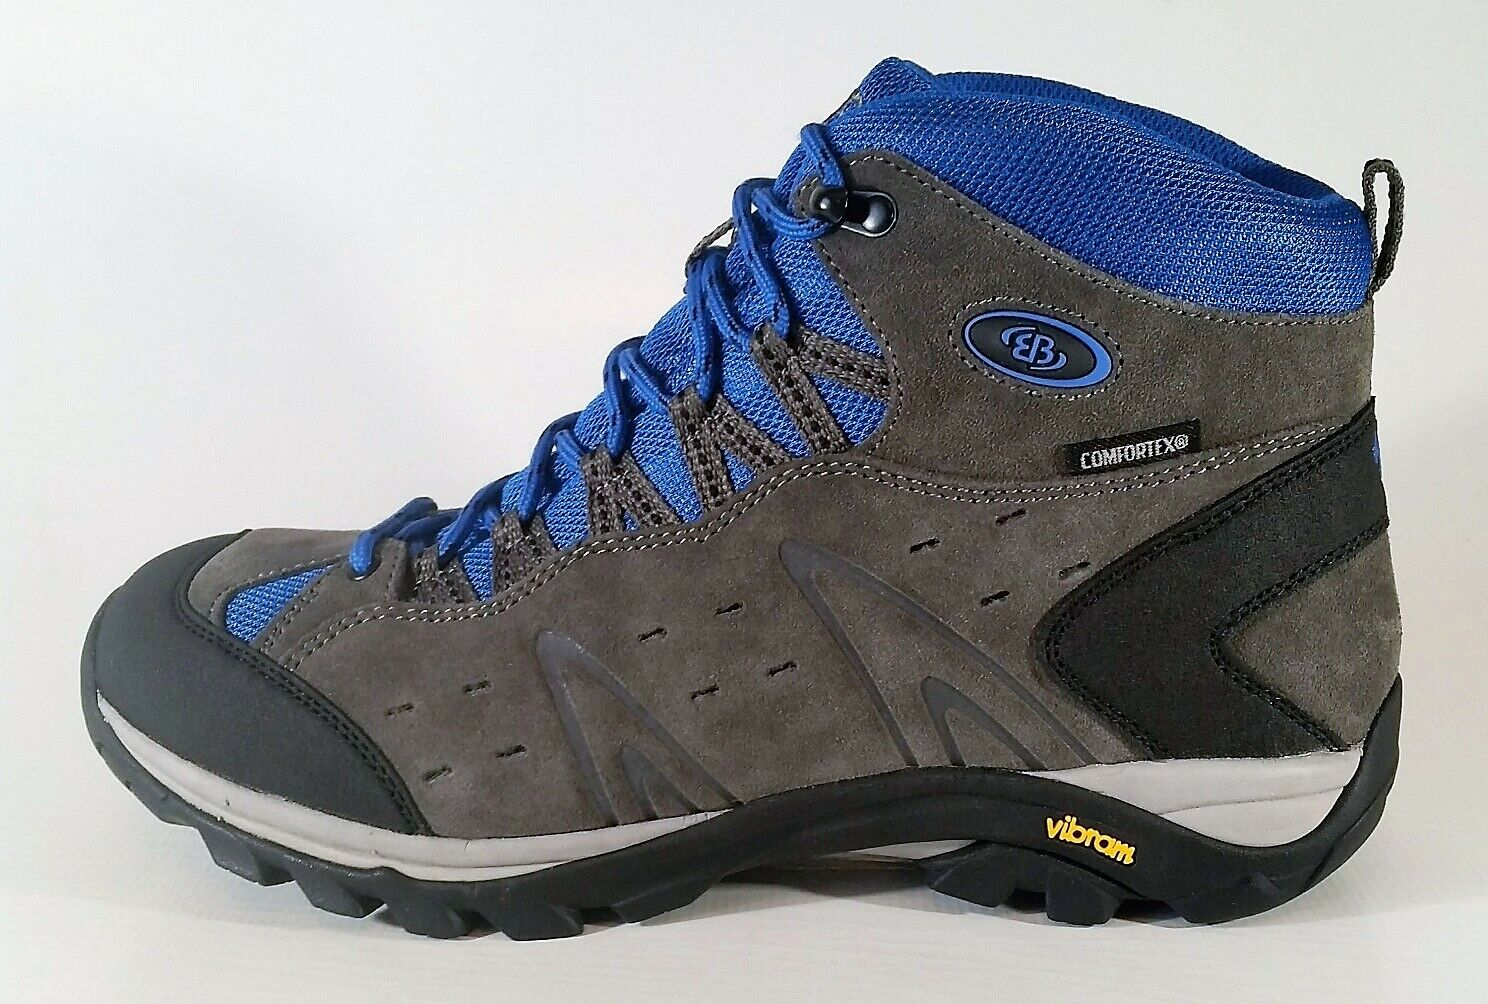 EB Brütting Mount Bona High Wander Trekking Outdoor Stiefel   Gr. 38